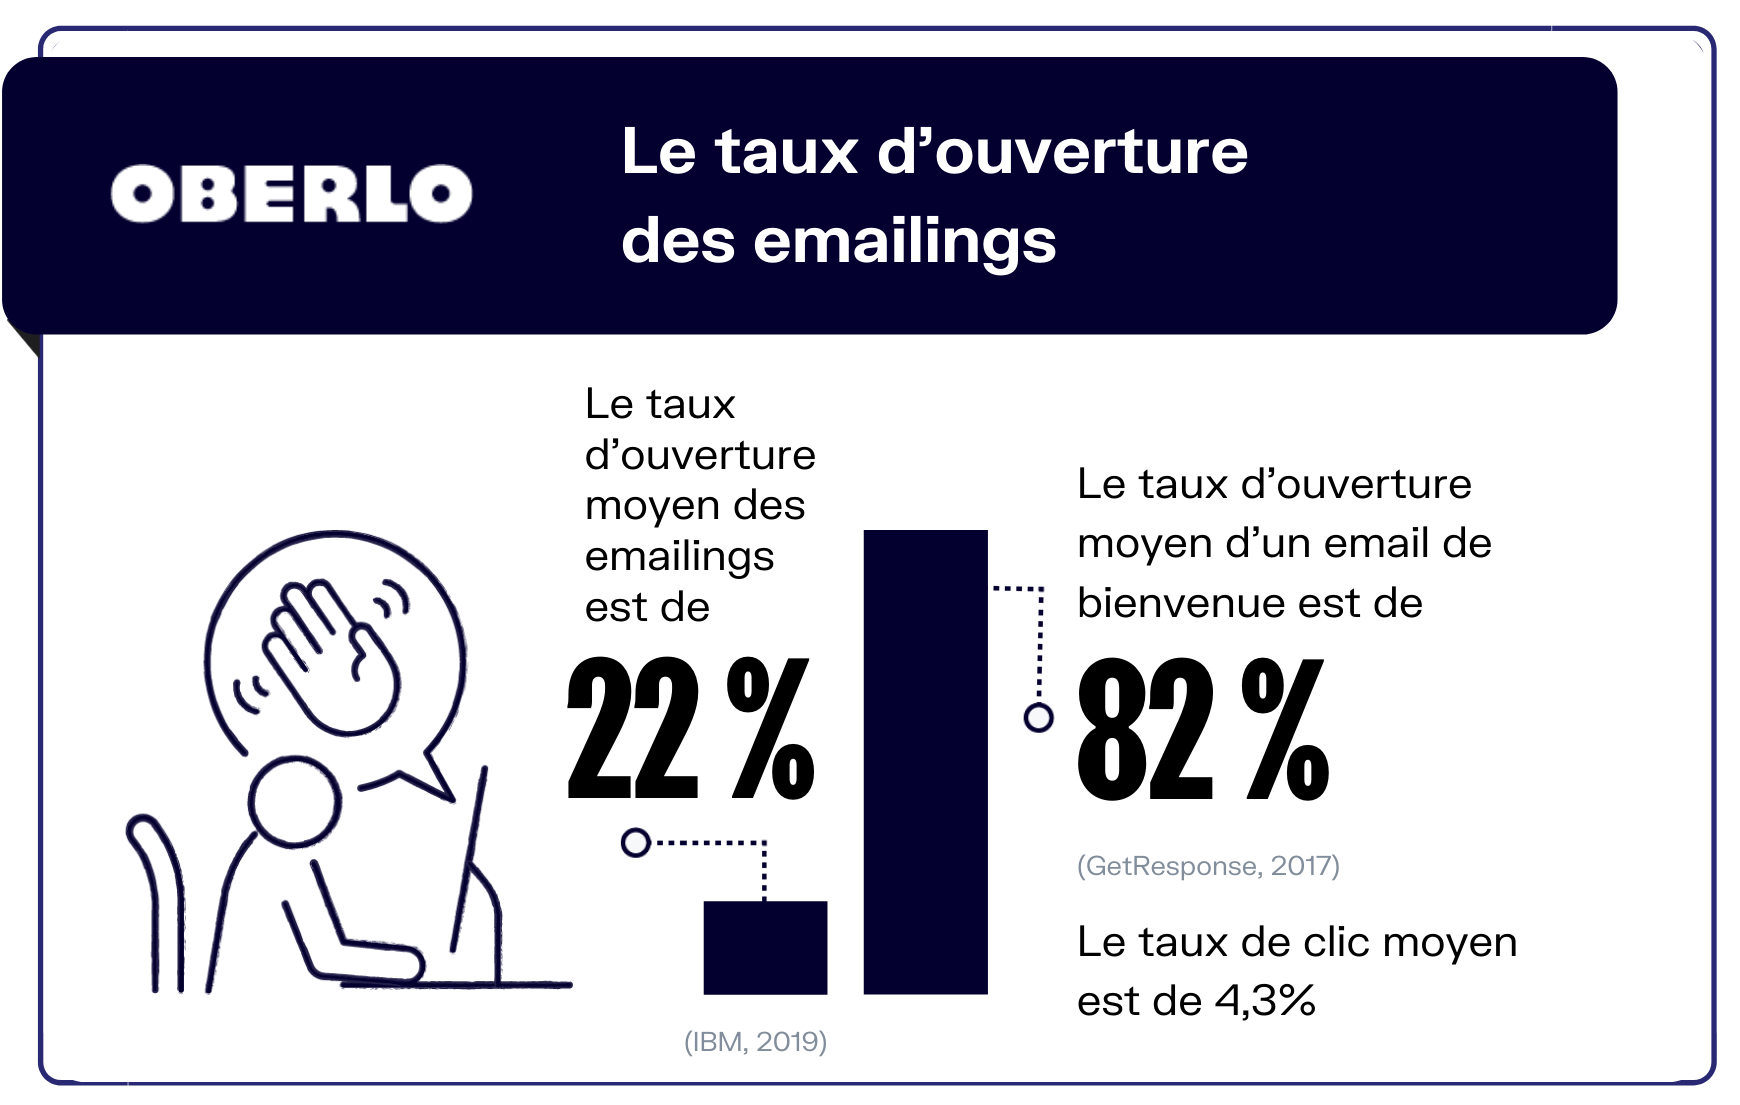 taux ouverture emailings